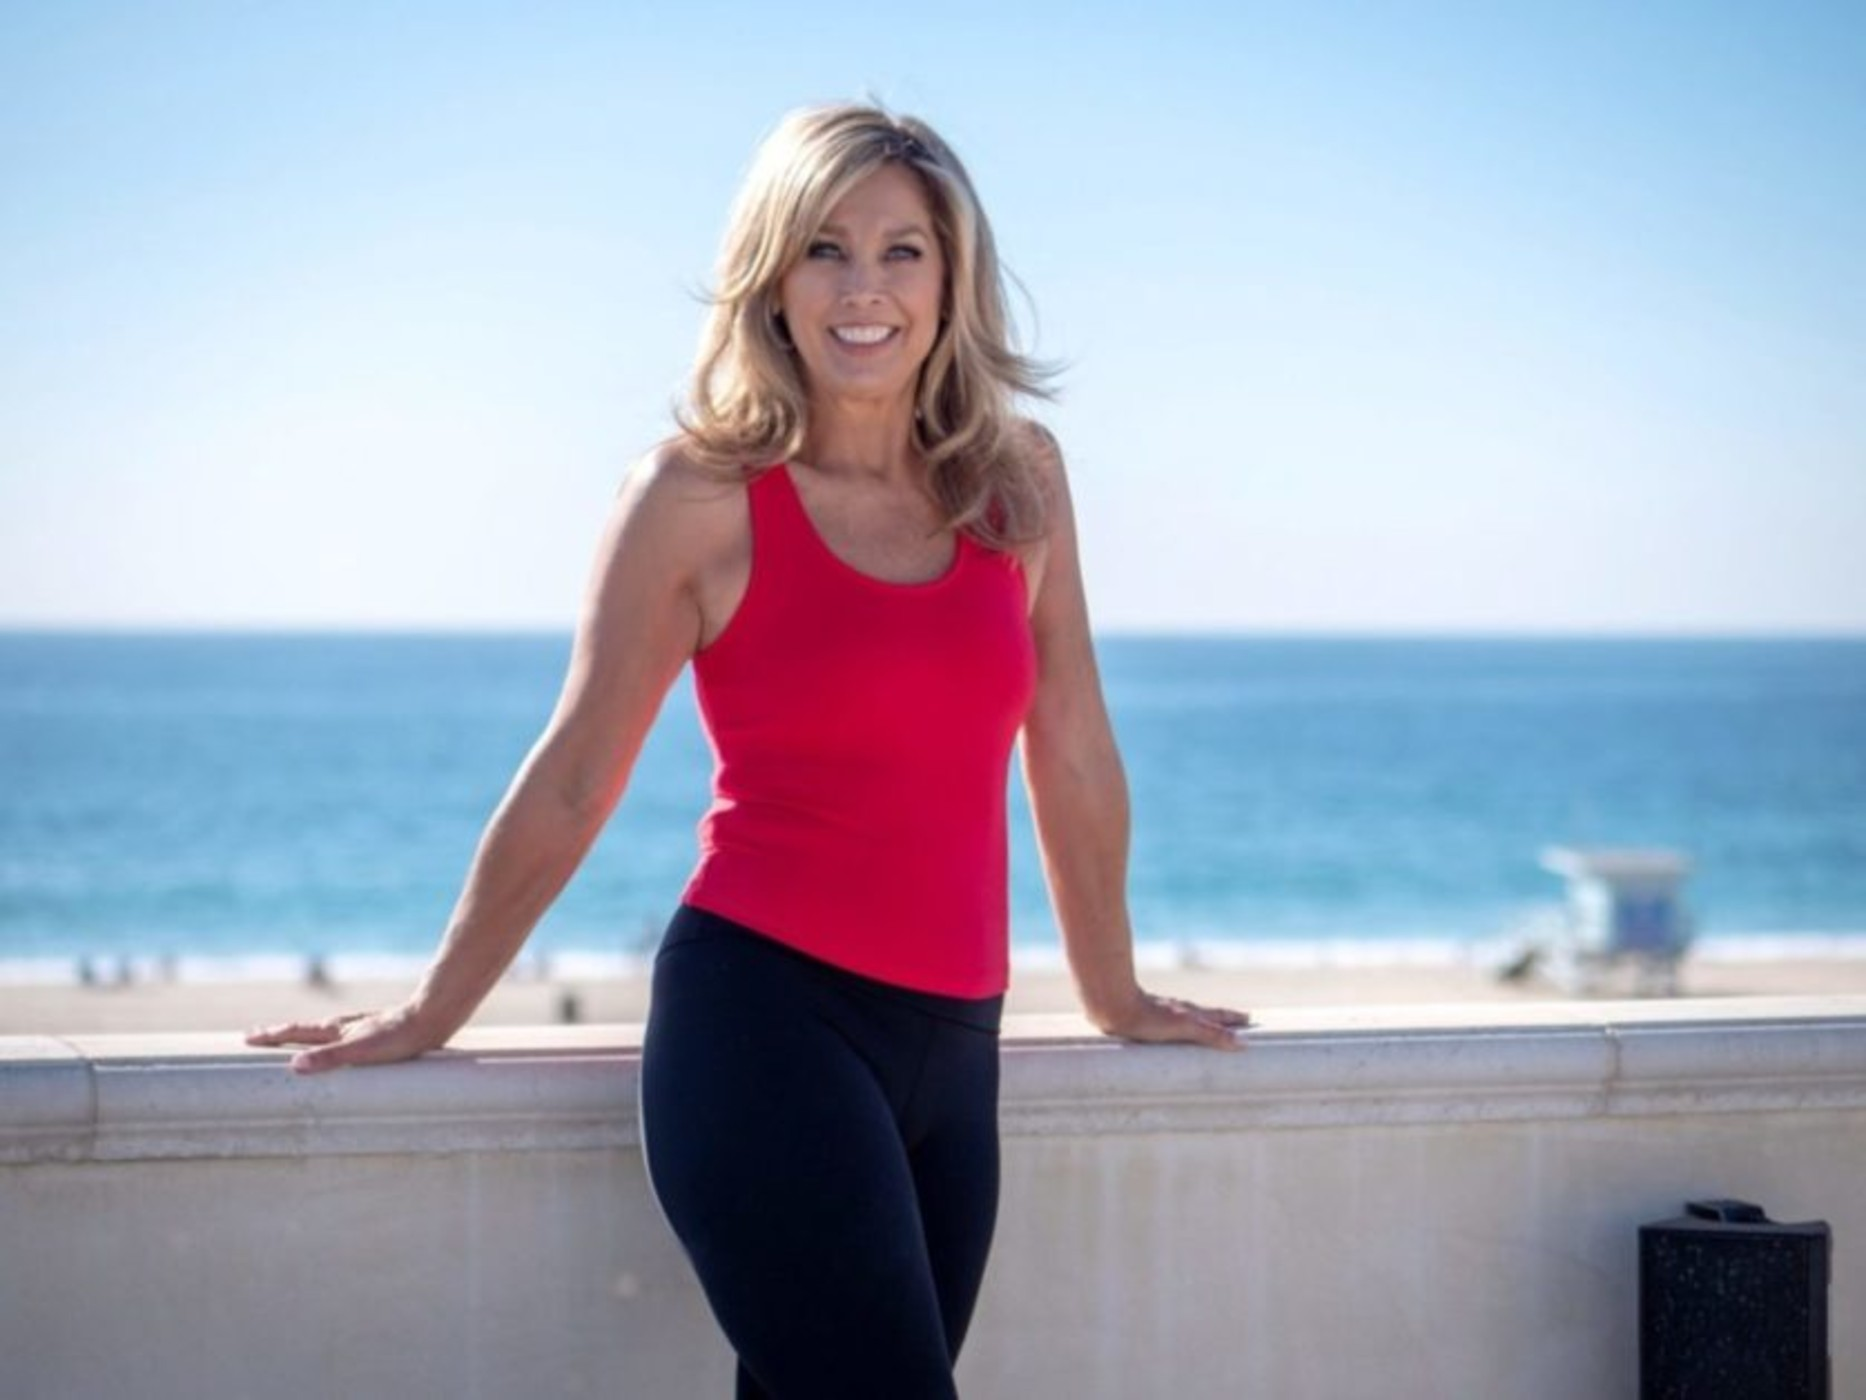 Weight Loss Programs: How to Find The Right One For You